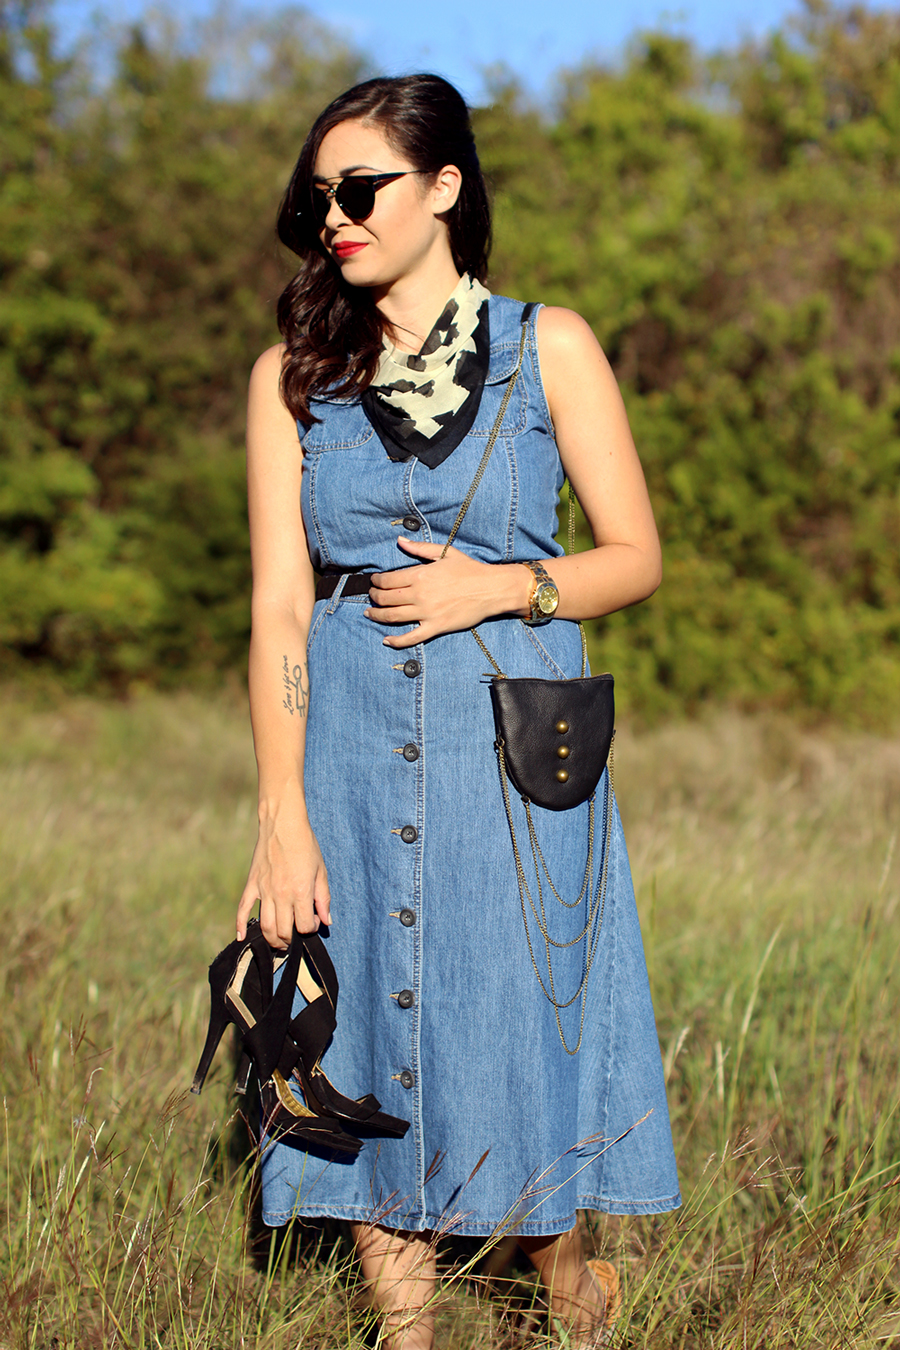 FIXIN-TO-THRILL-PINK-SILVER-FASHION-DENIM-DRESS-STRAPPY-HEELS-TREND-FALL-OCTOBER-ATX-AUSTIN-STYLE-BLOG-FW15-TRENDY-CHIC-GLAM-TEXAS-6